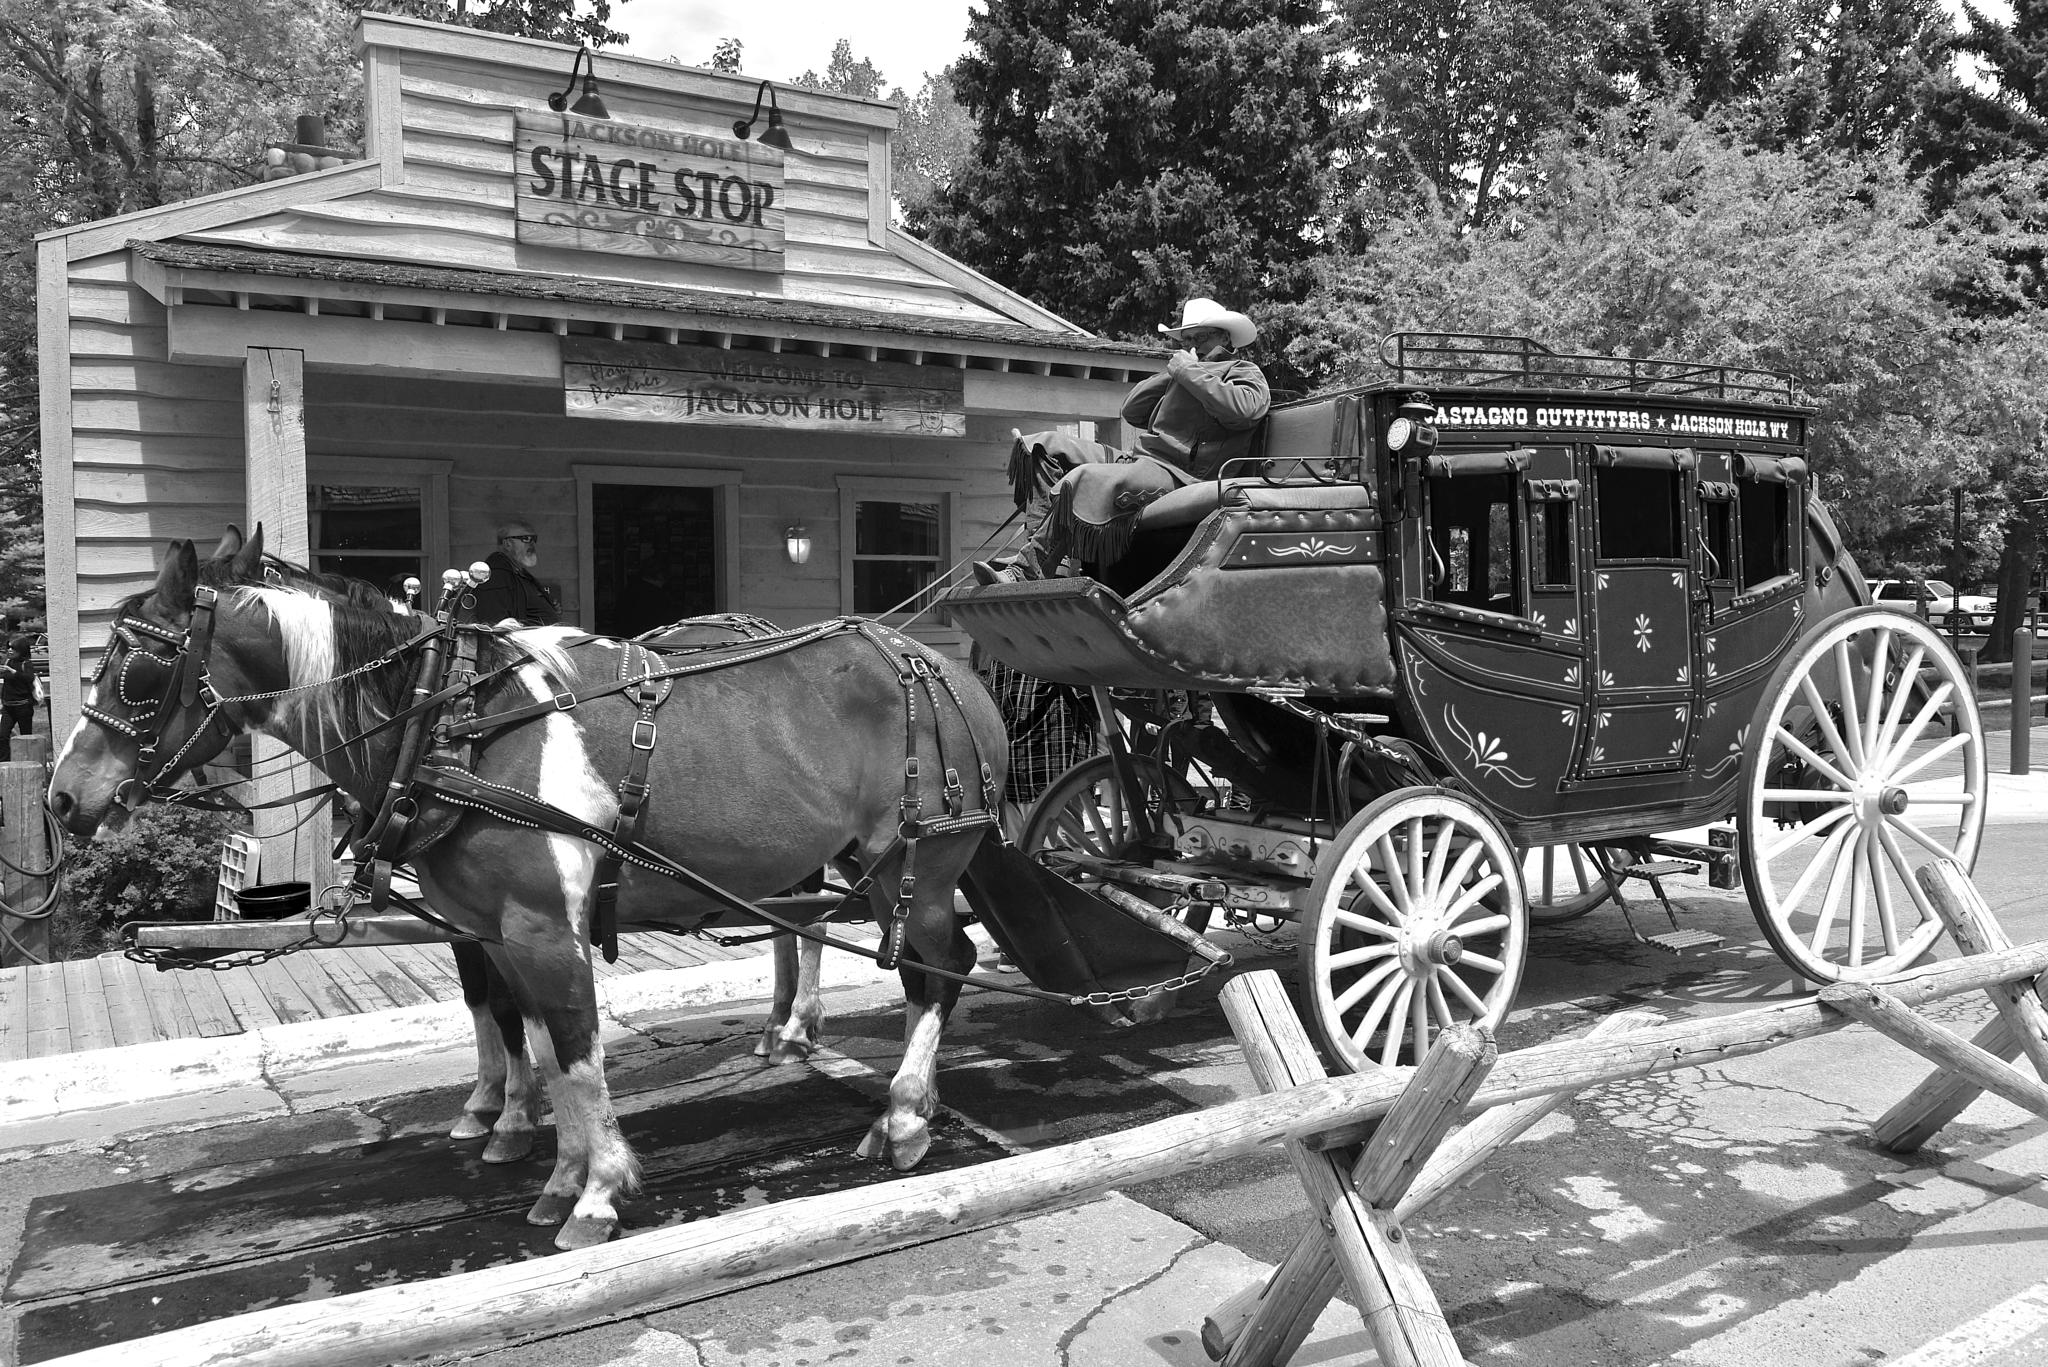 Stagecoach Black and White by Steve Aicinena